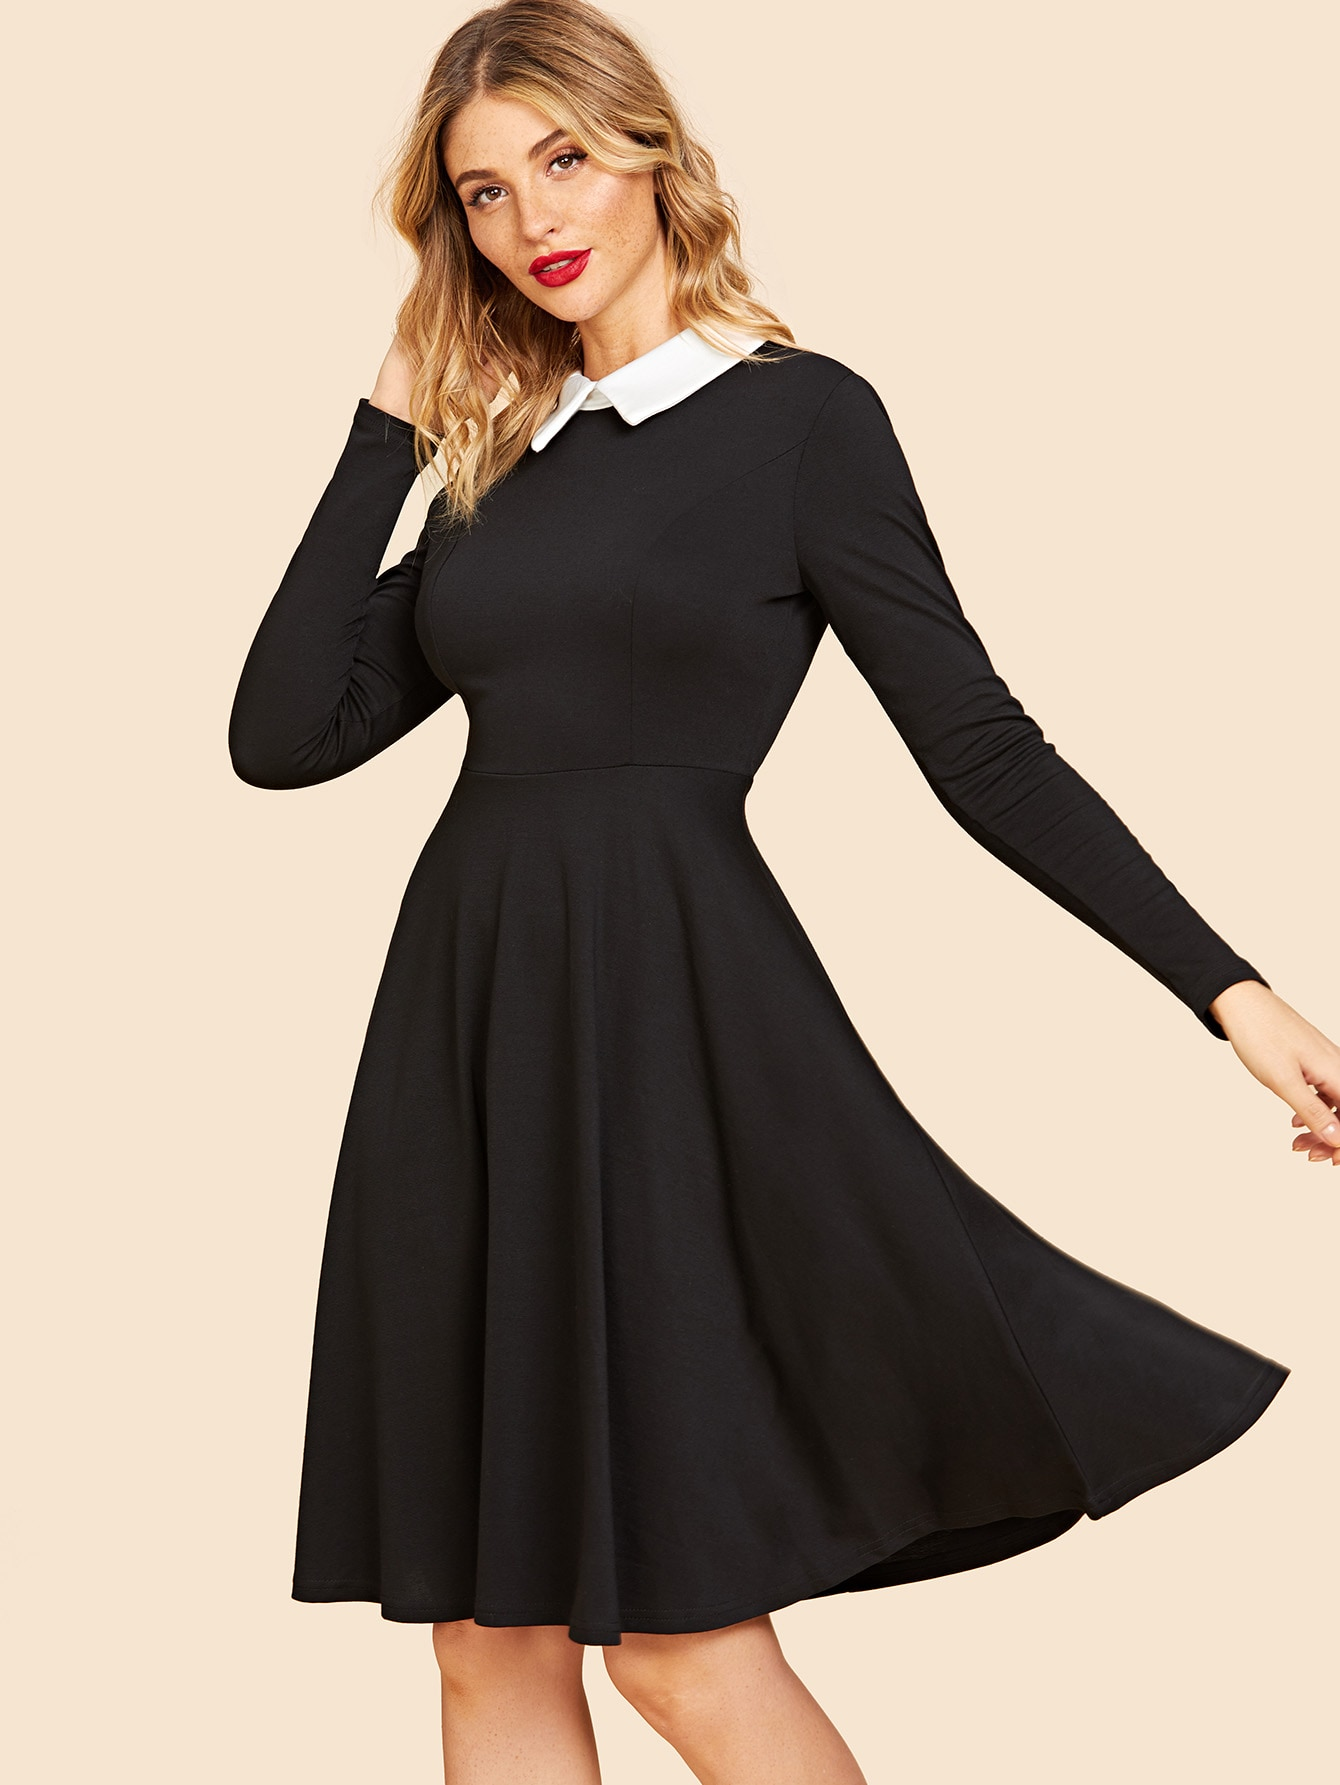 50s Contrast Collar Flare Dress 50s Contrast Collar Flare Dress